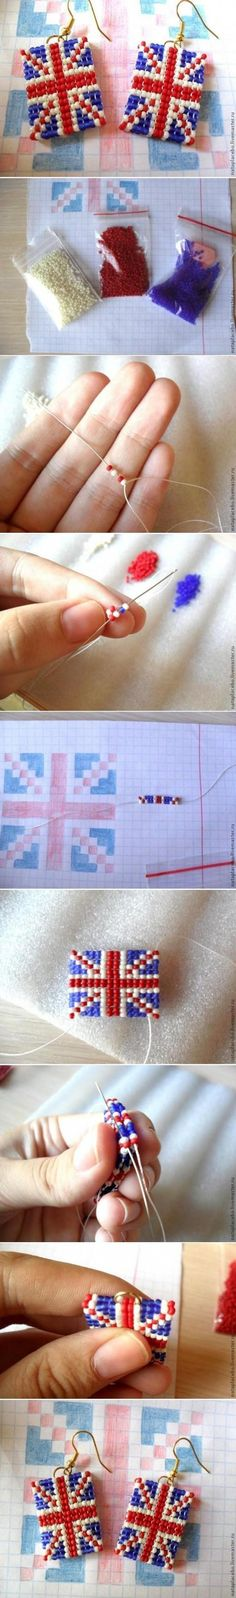 Craft ideas 742 - Pandahall.com-I am SURE one can adapt the pattern to meet one's patriotic affiliation.